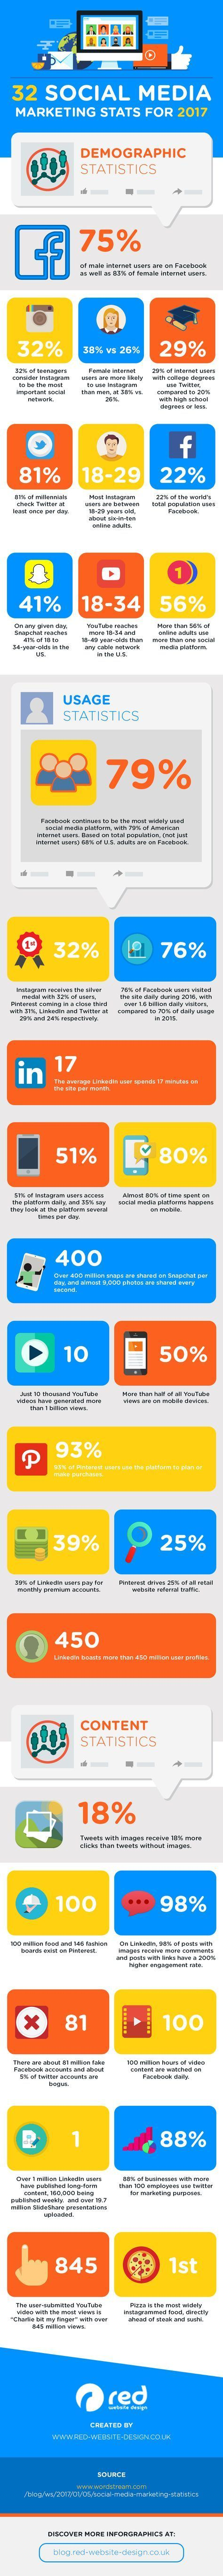 These stats will help you determine where to spend your time on social media and how to develop a strategy in 2017.